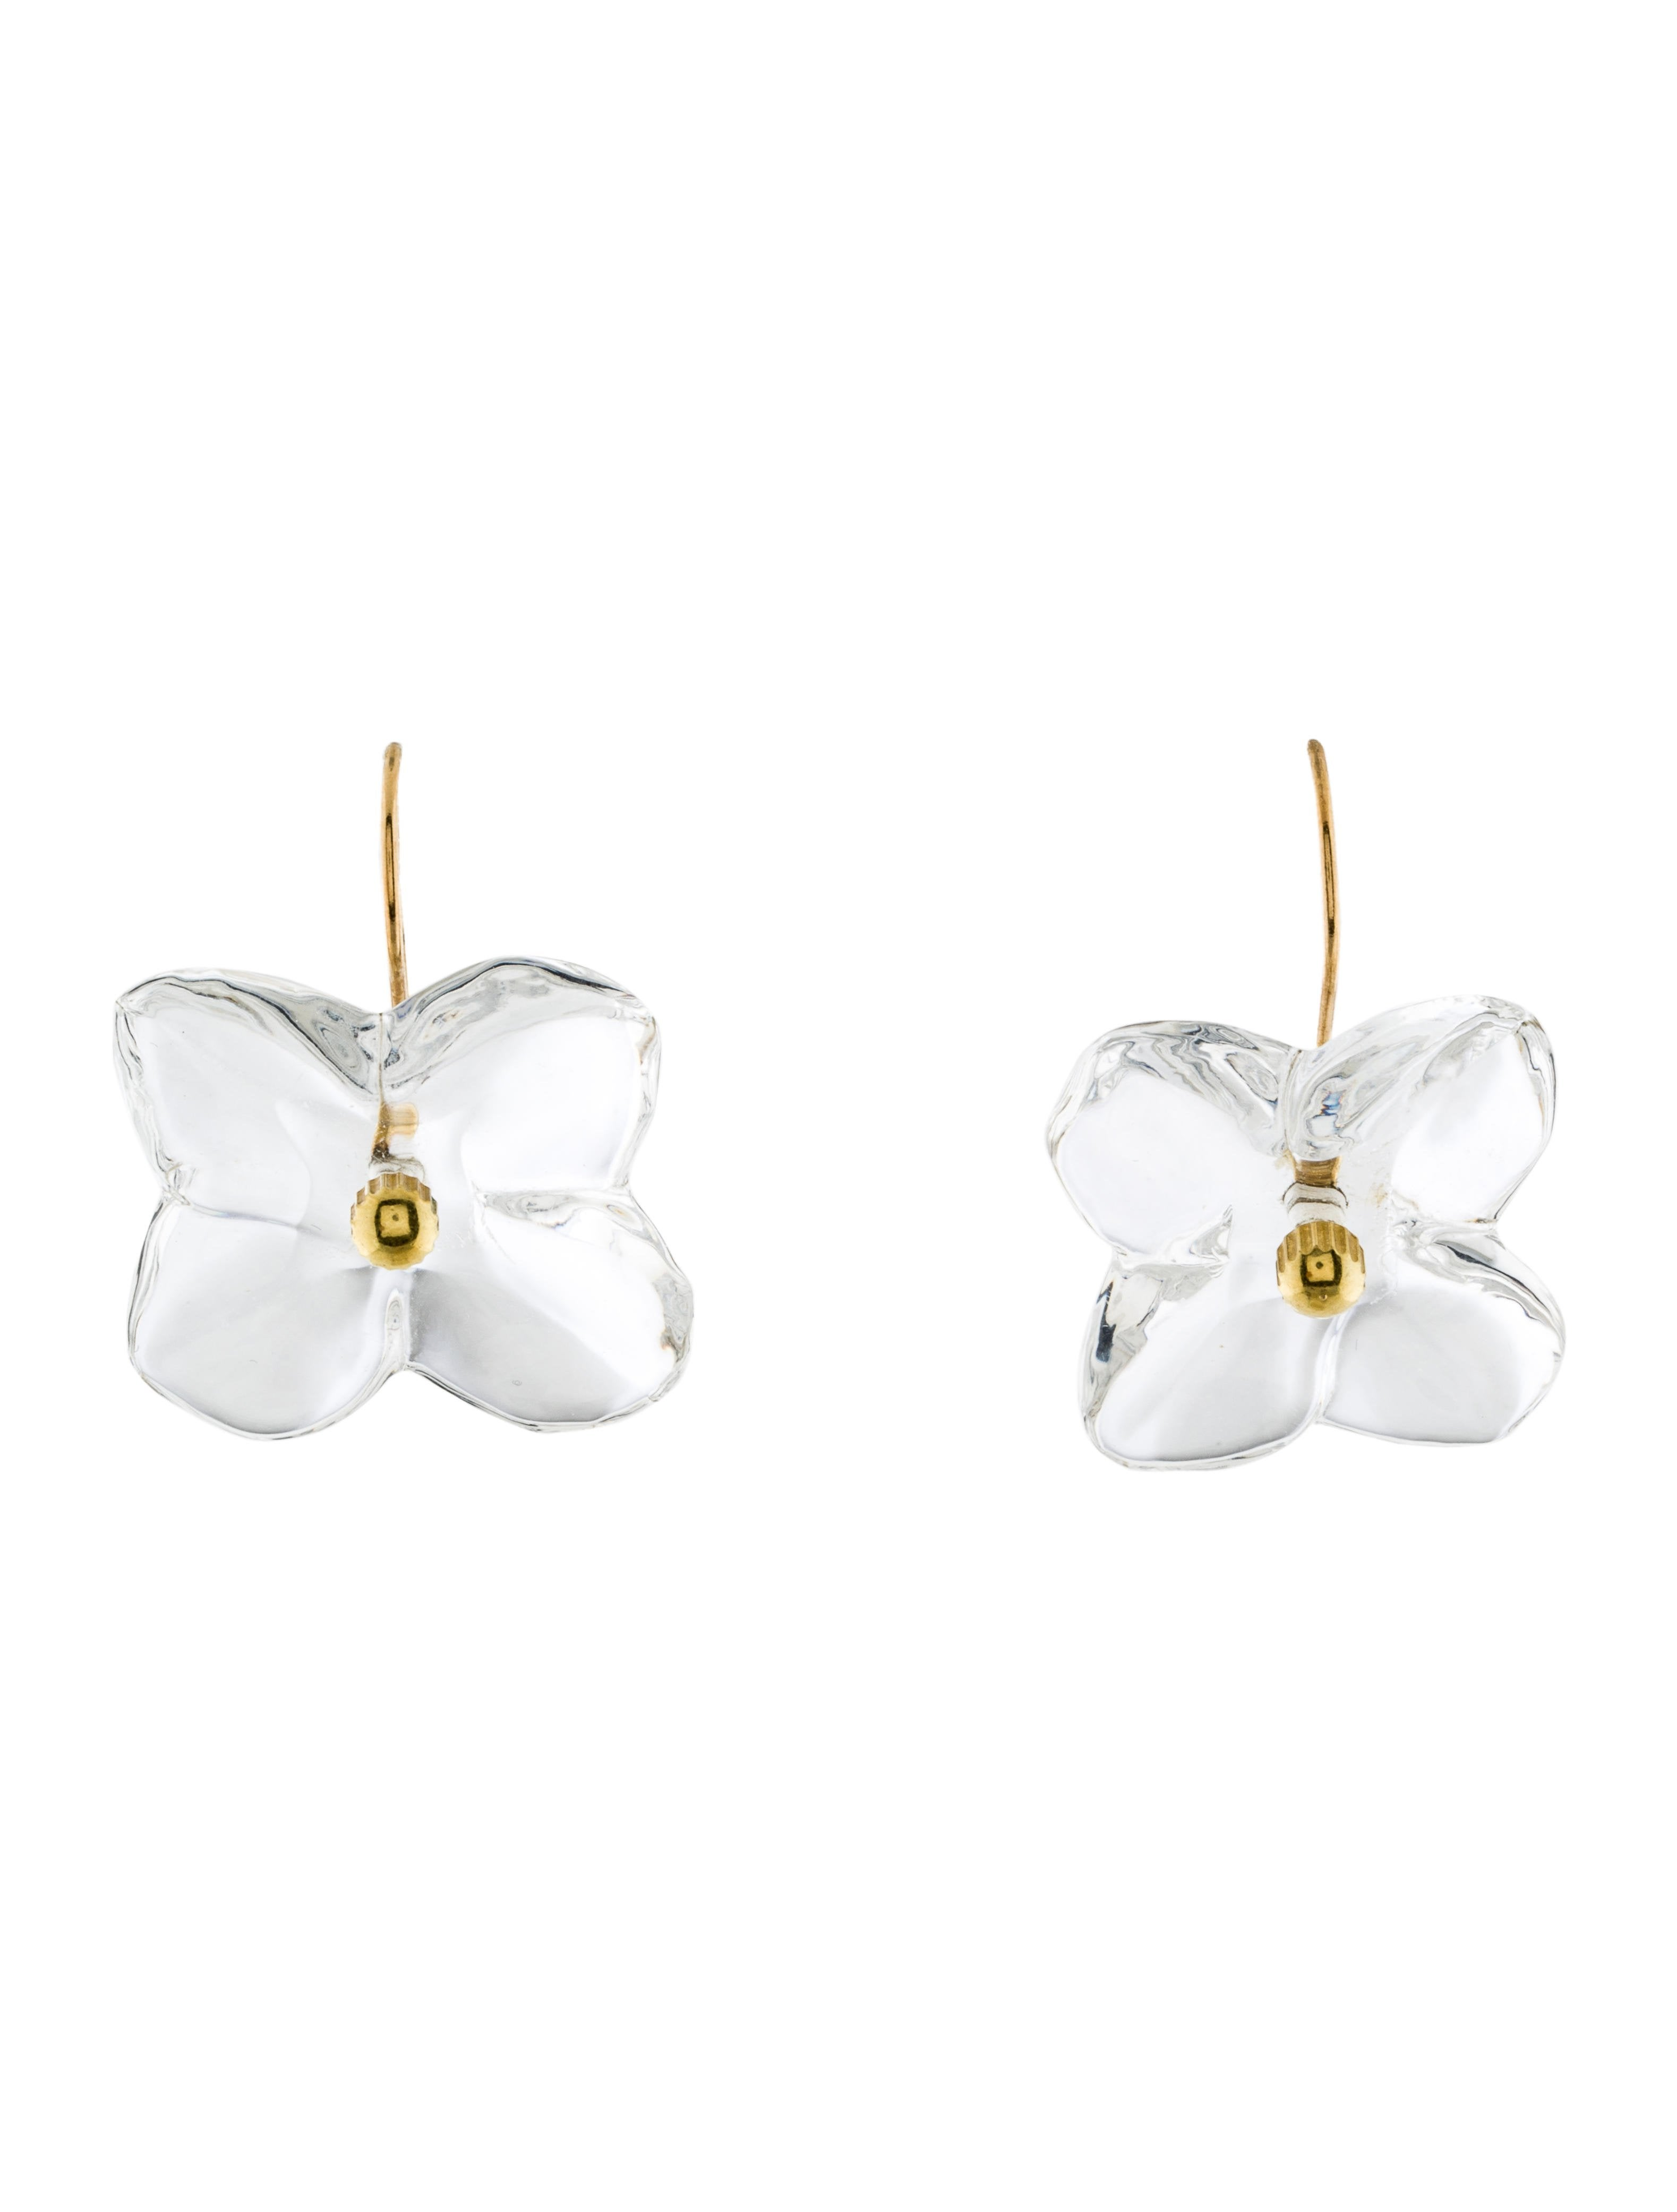 Baccarat Crystal Hortensia Flower Drop Earrings Bcc22744 The Realreal